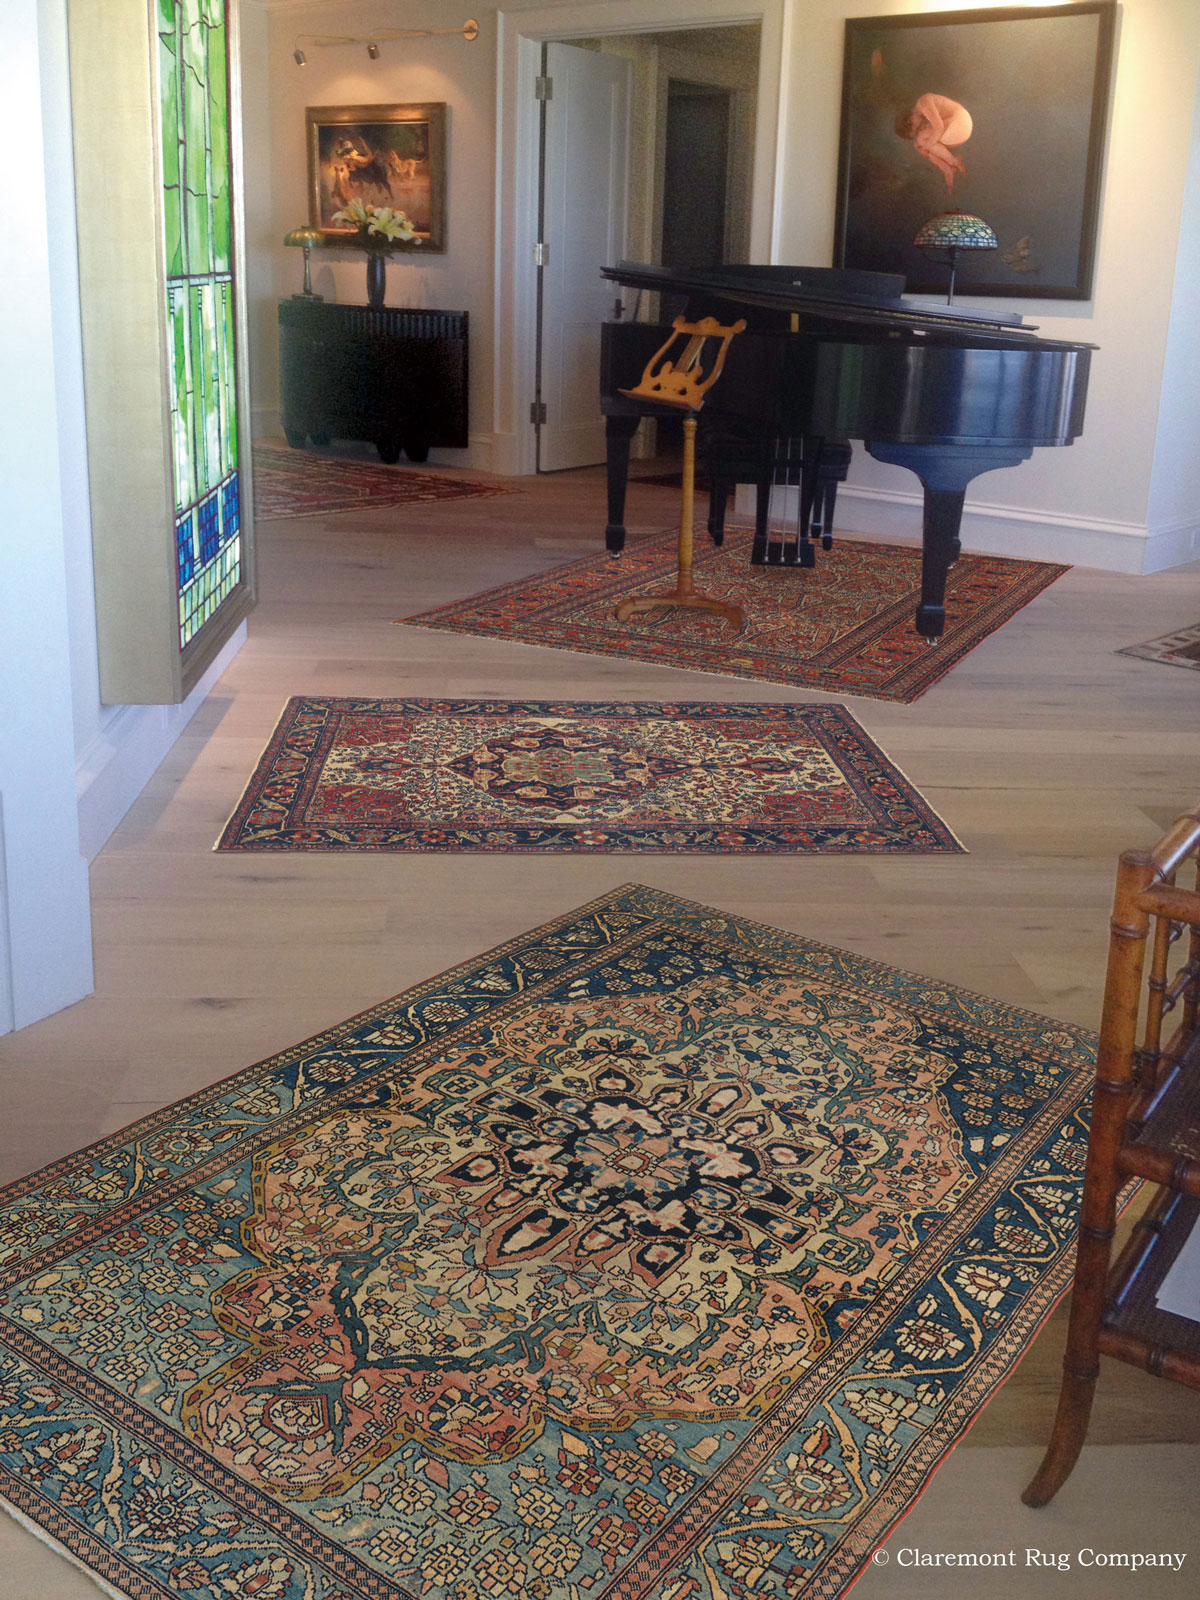 A Quintet Of Unique Area Size Antique Rugs Each Adds Their